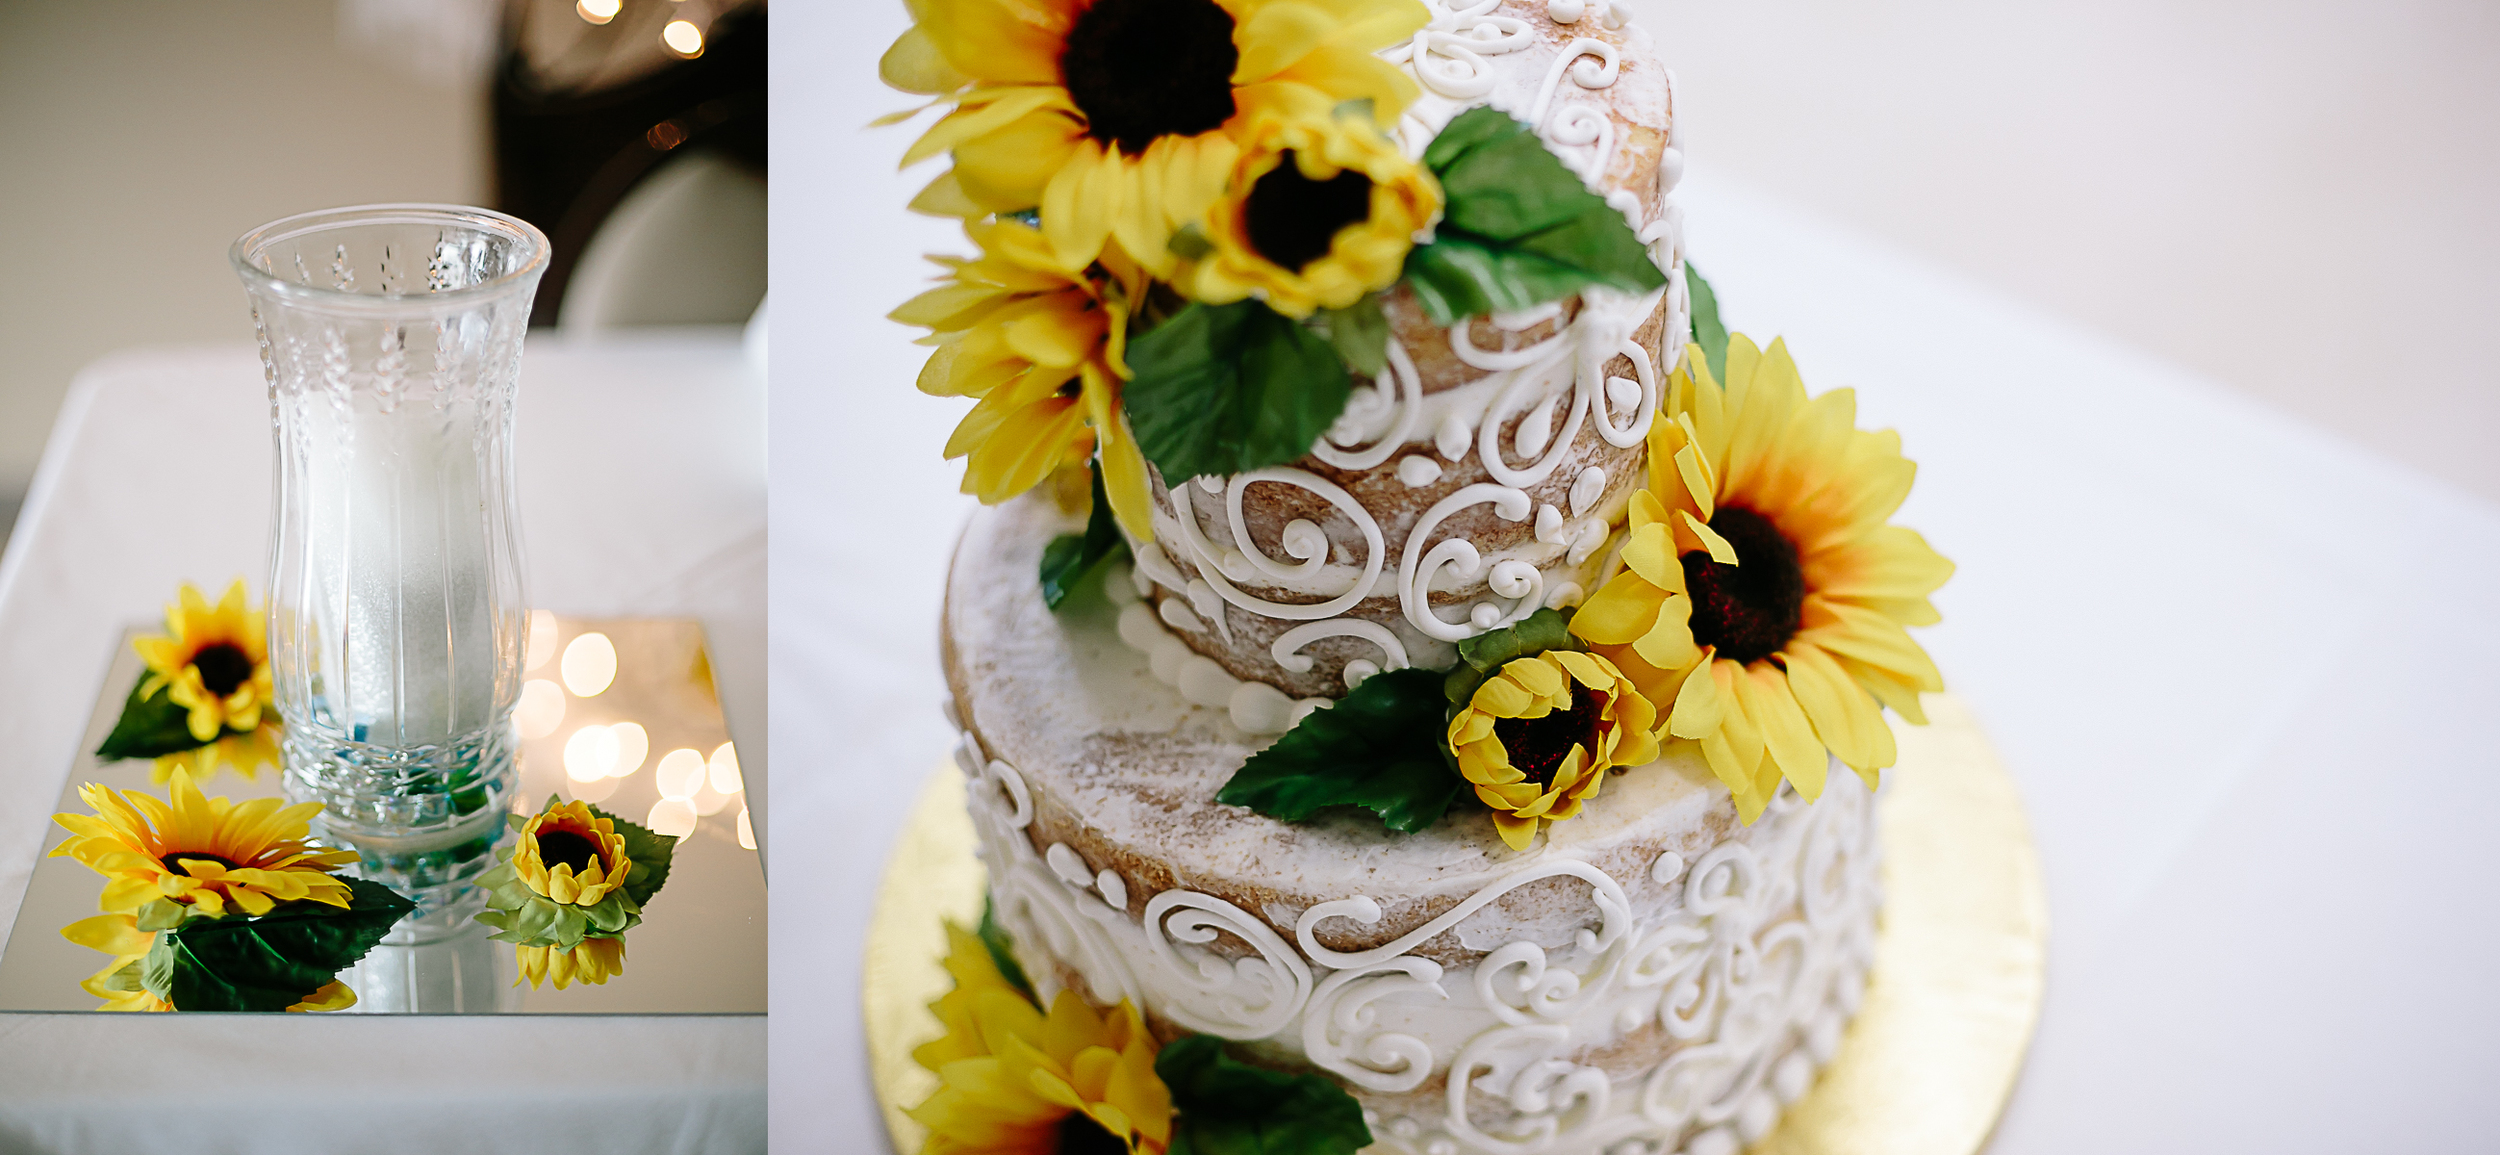 Cake & Centerpiece - Jacob Henry Mansion Estate - Corrie Mick Photography.jpg